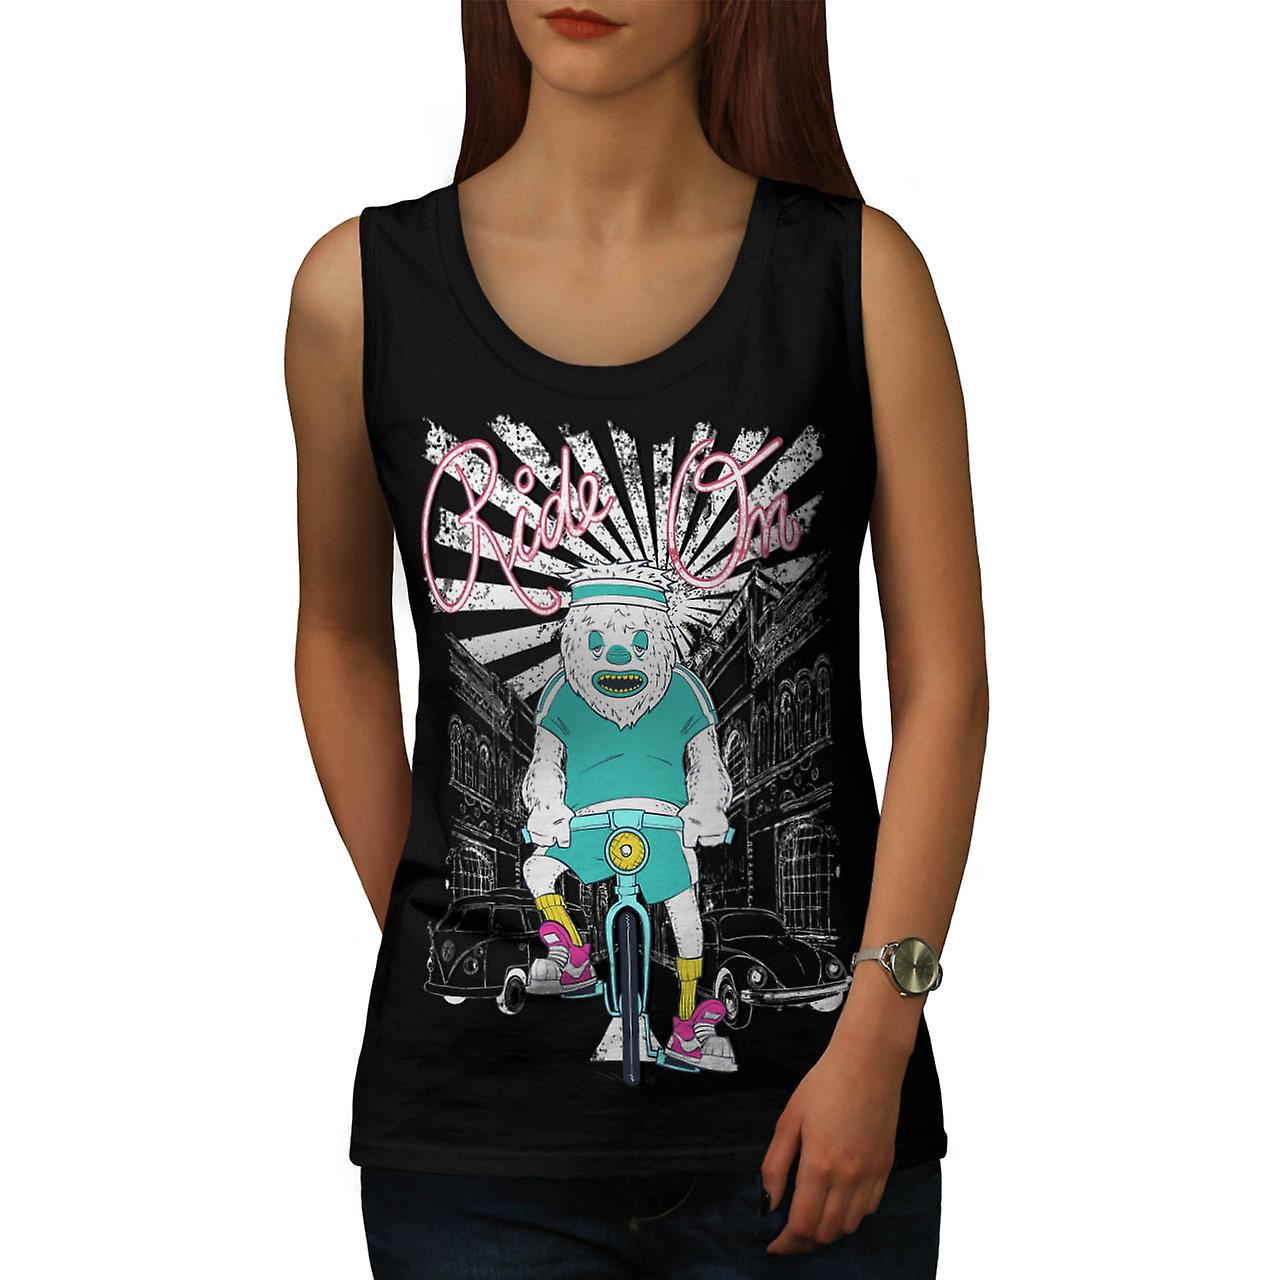 Ride On Monster Bike Cycle City Women Black Tank Top | Wellcoda